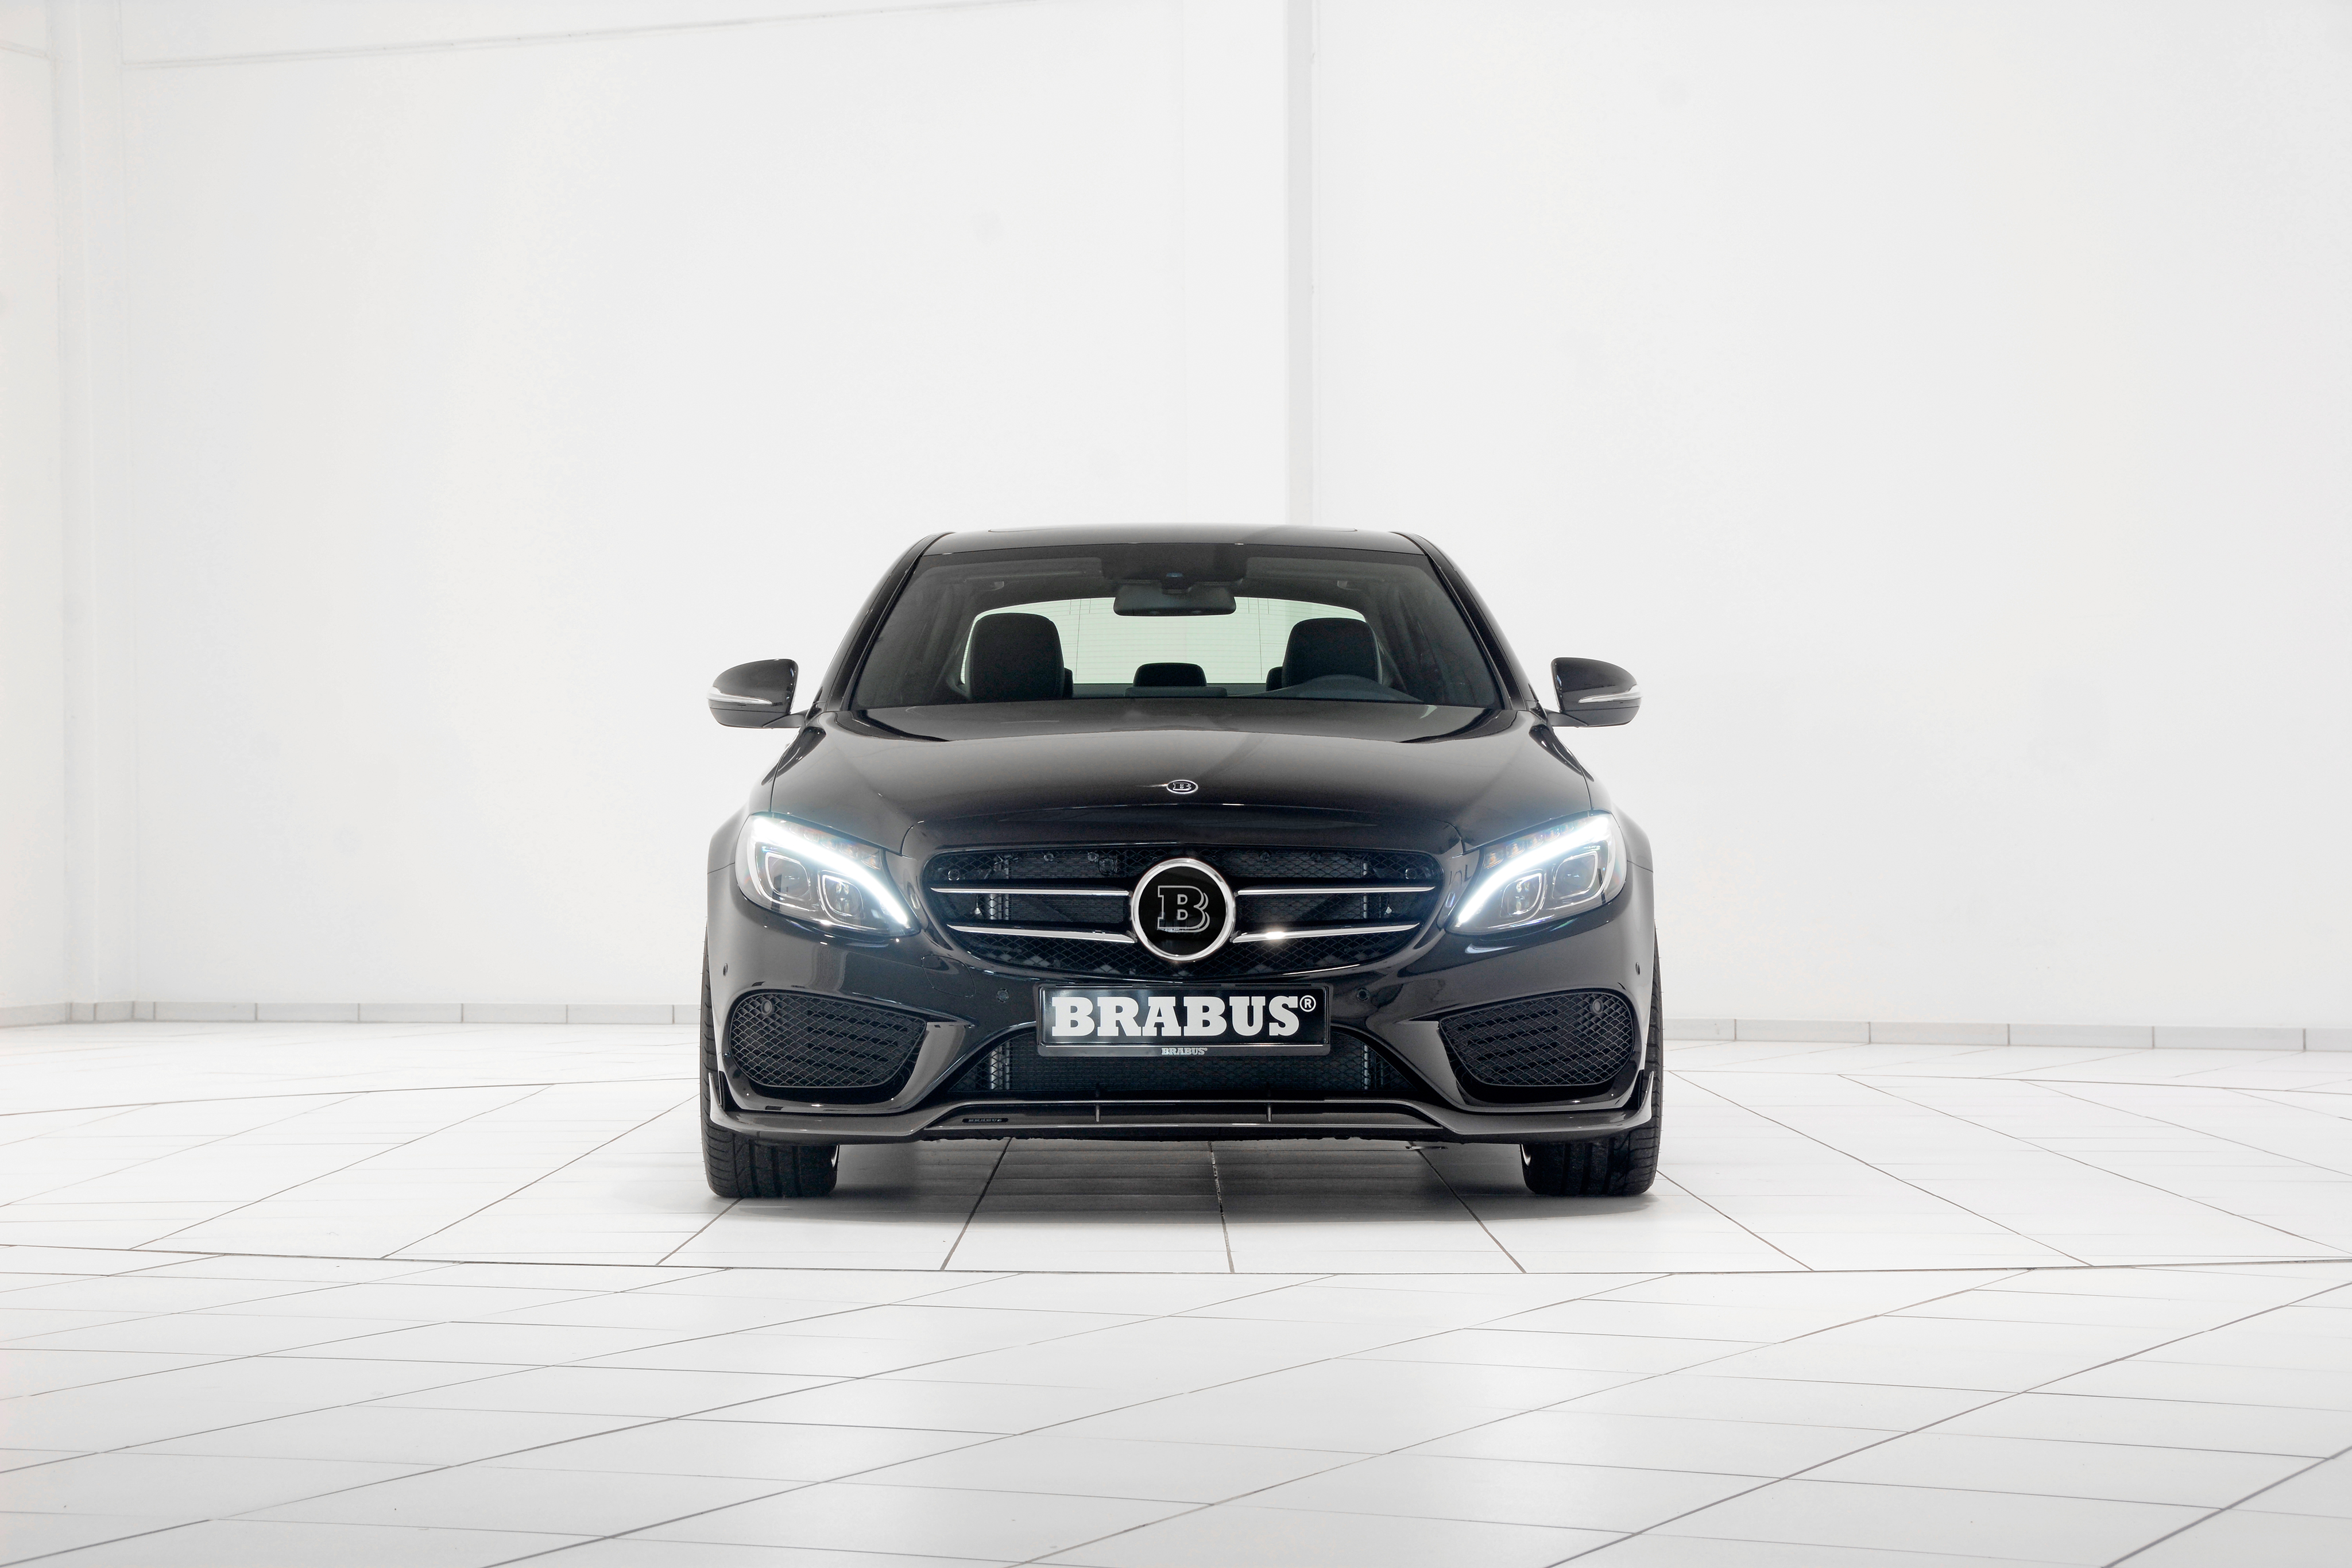 2018 Brabus Mercedes Benz C Class photo - 1